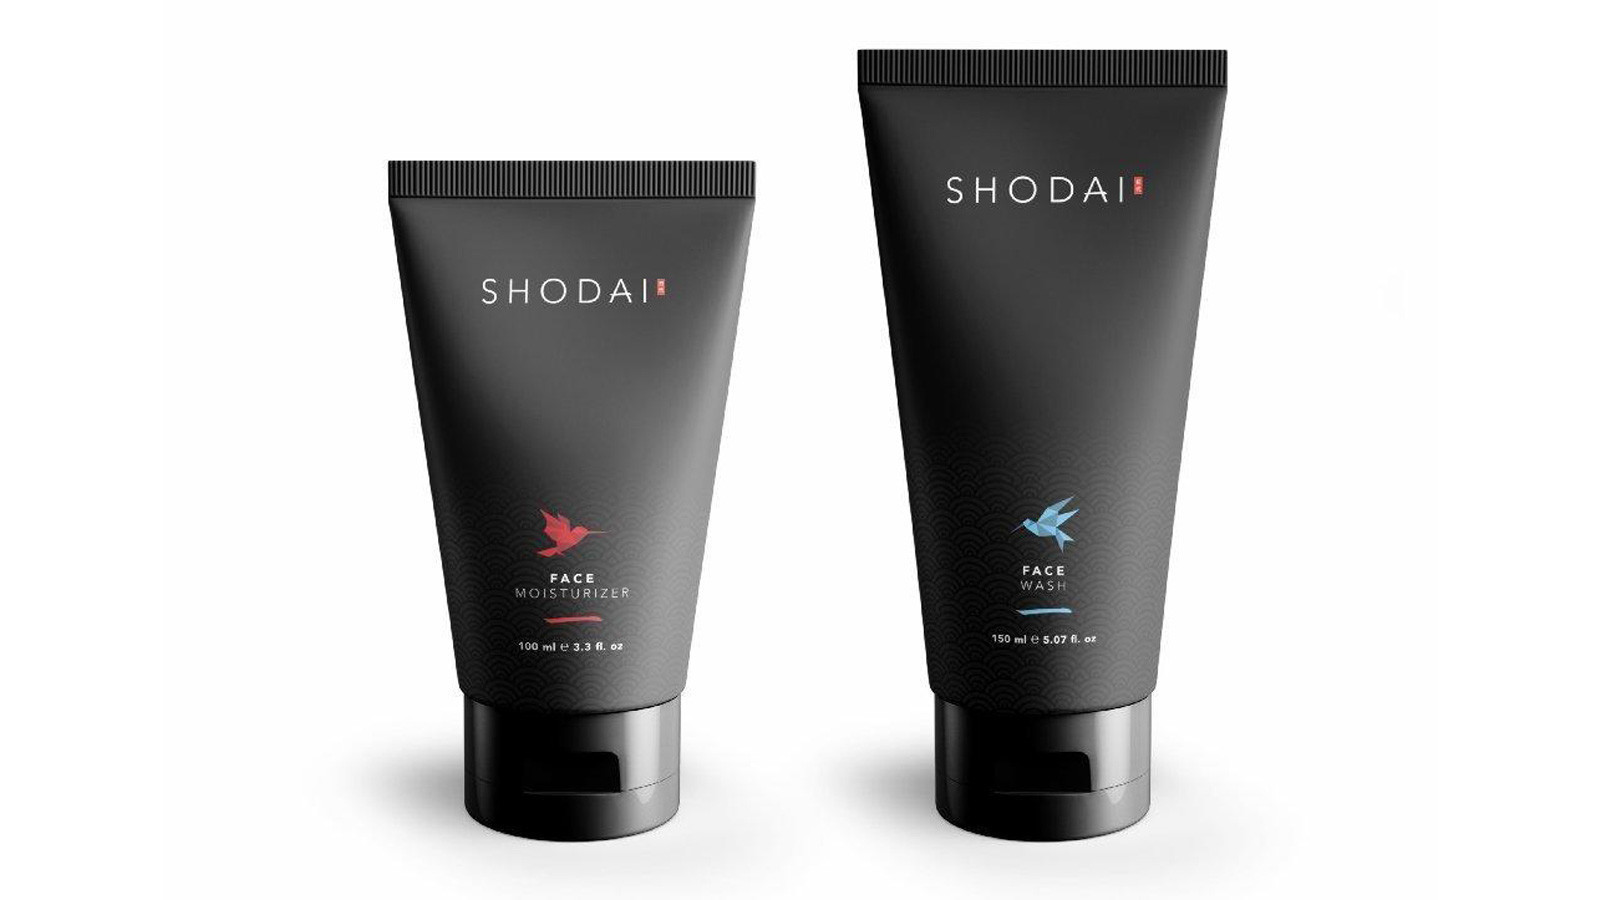 A new grooming line wants to bring Japanese skin care essentials to men